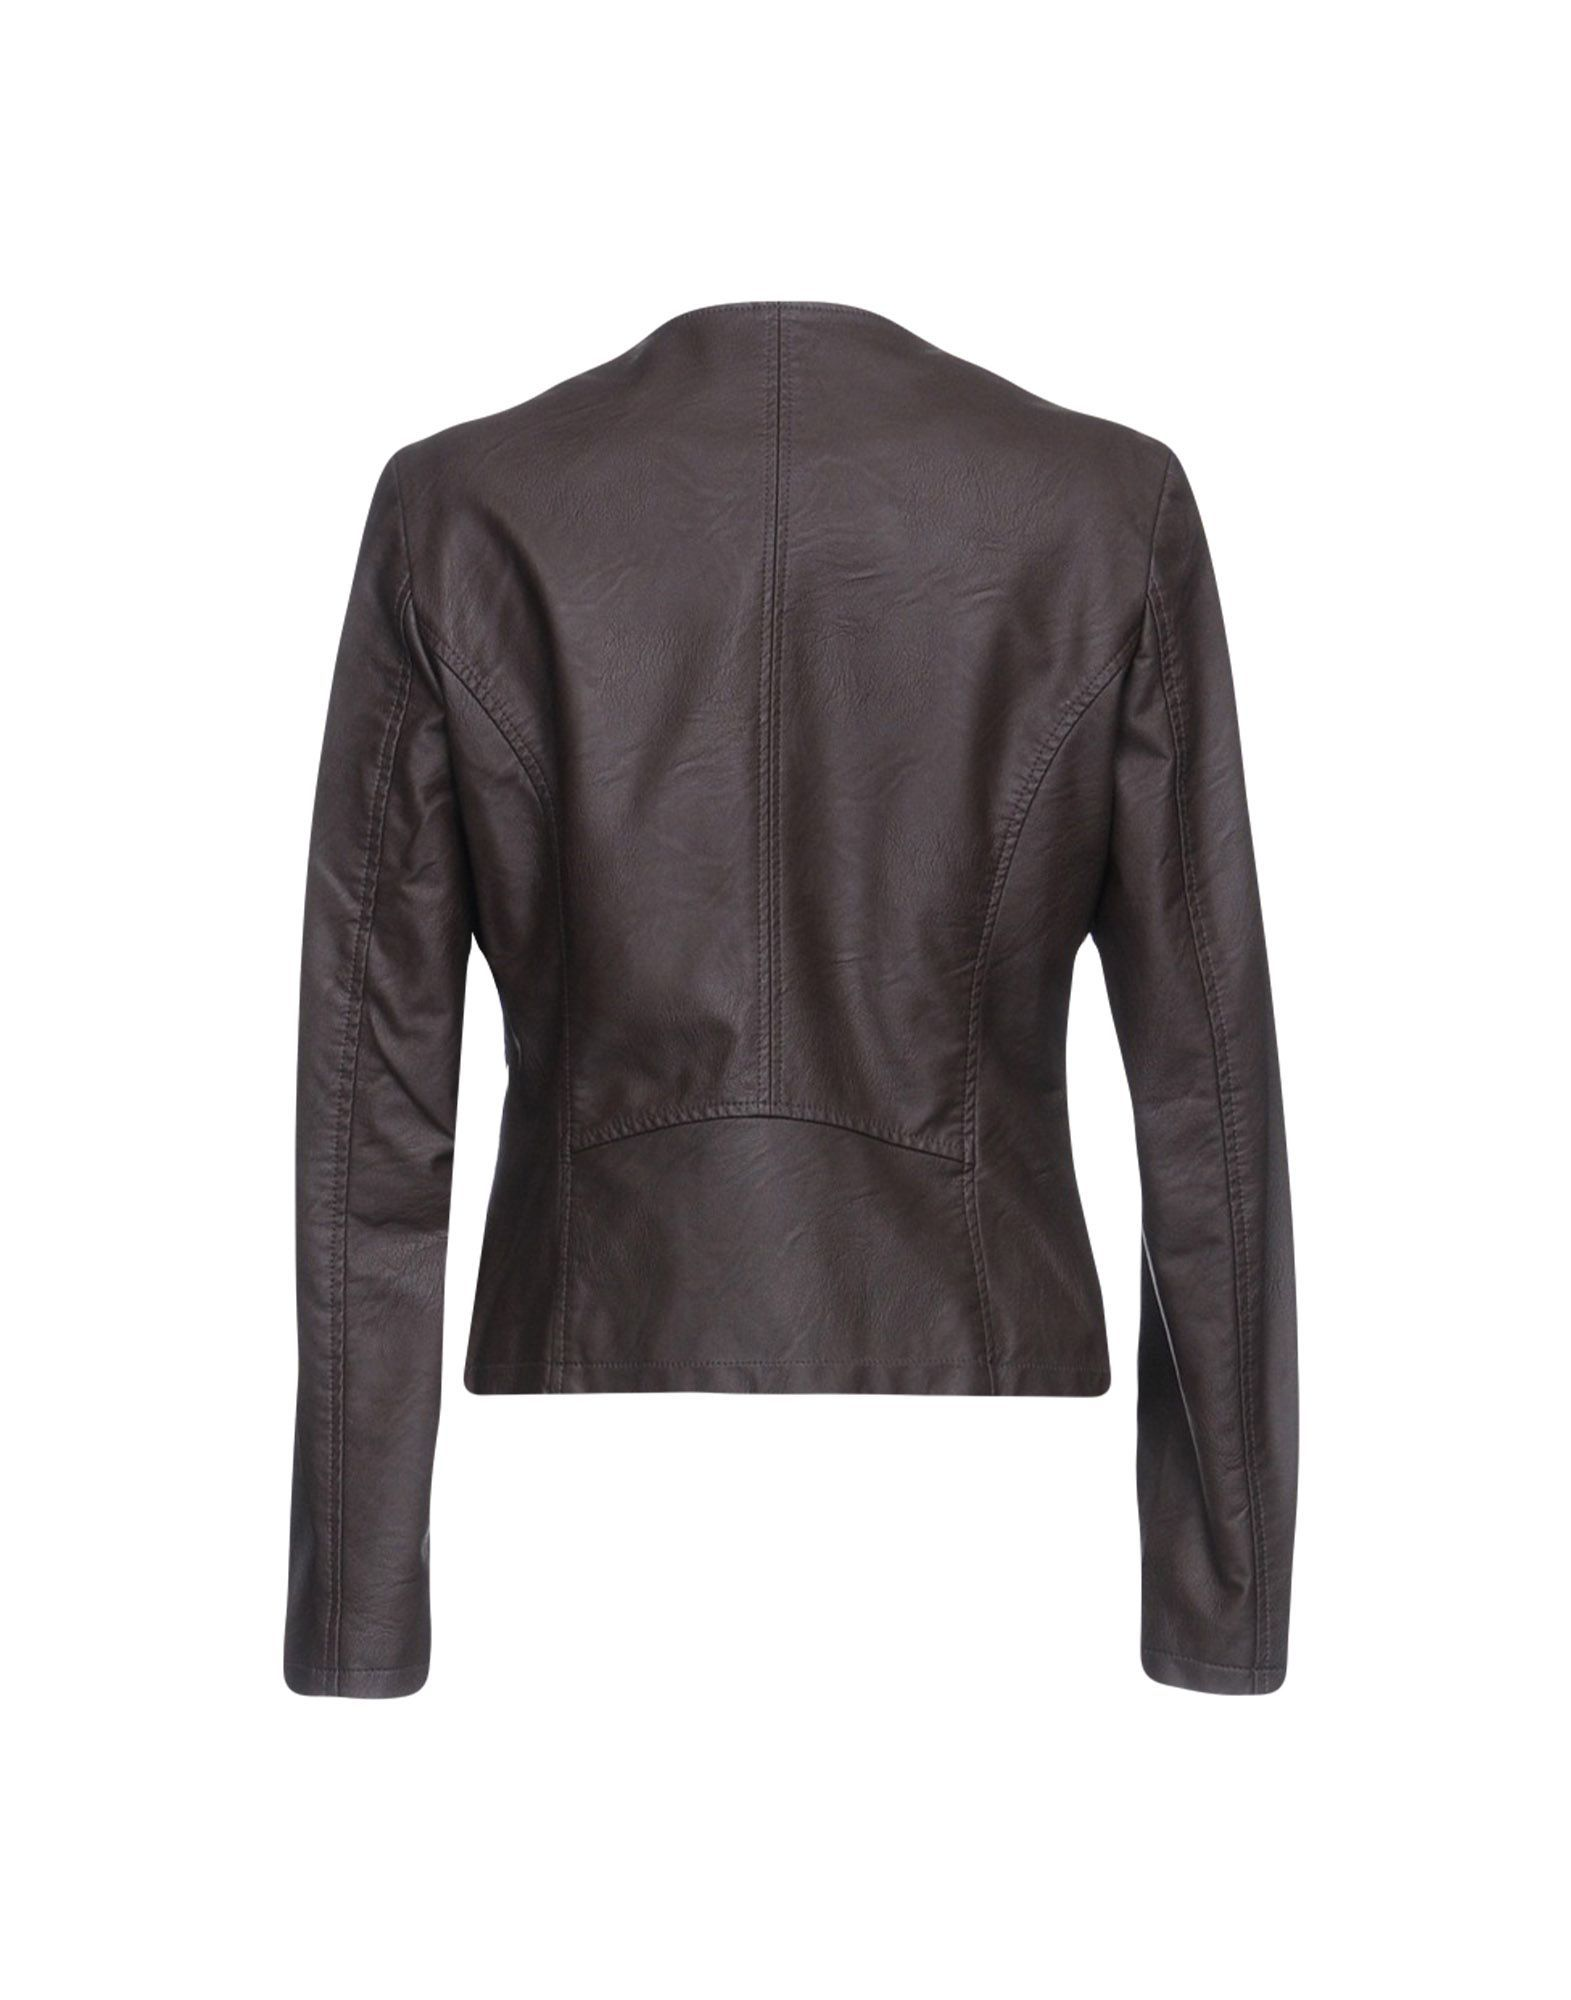 Kaos Jeans Dark Brown Faux Leather Jacket